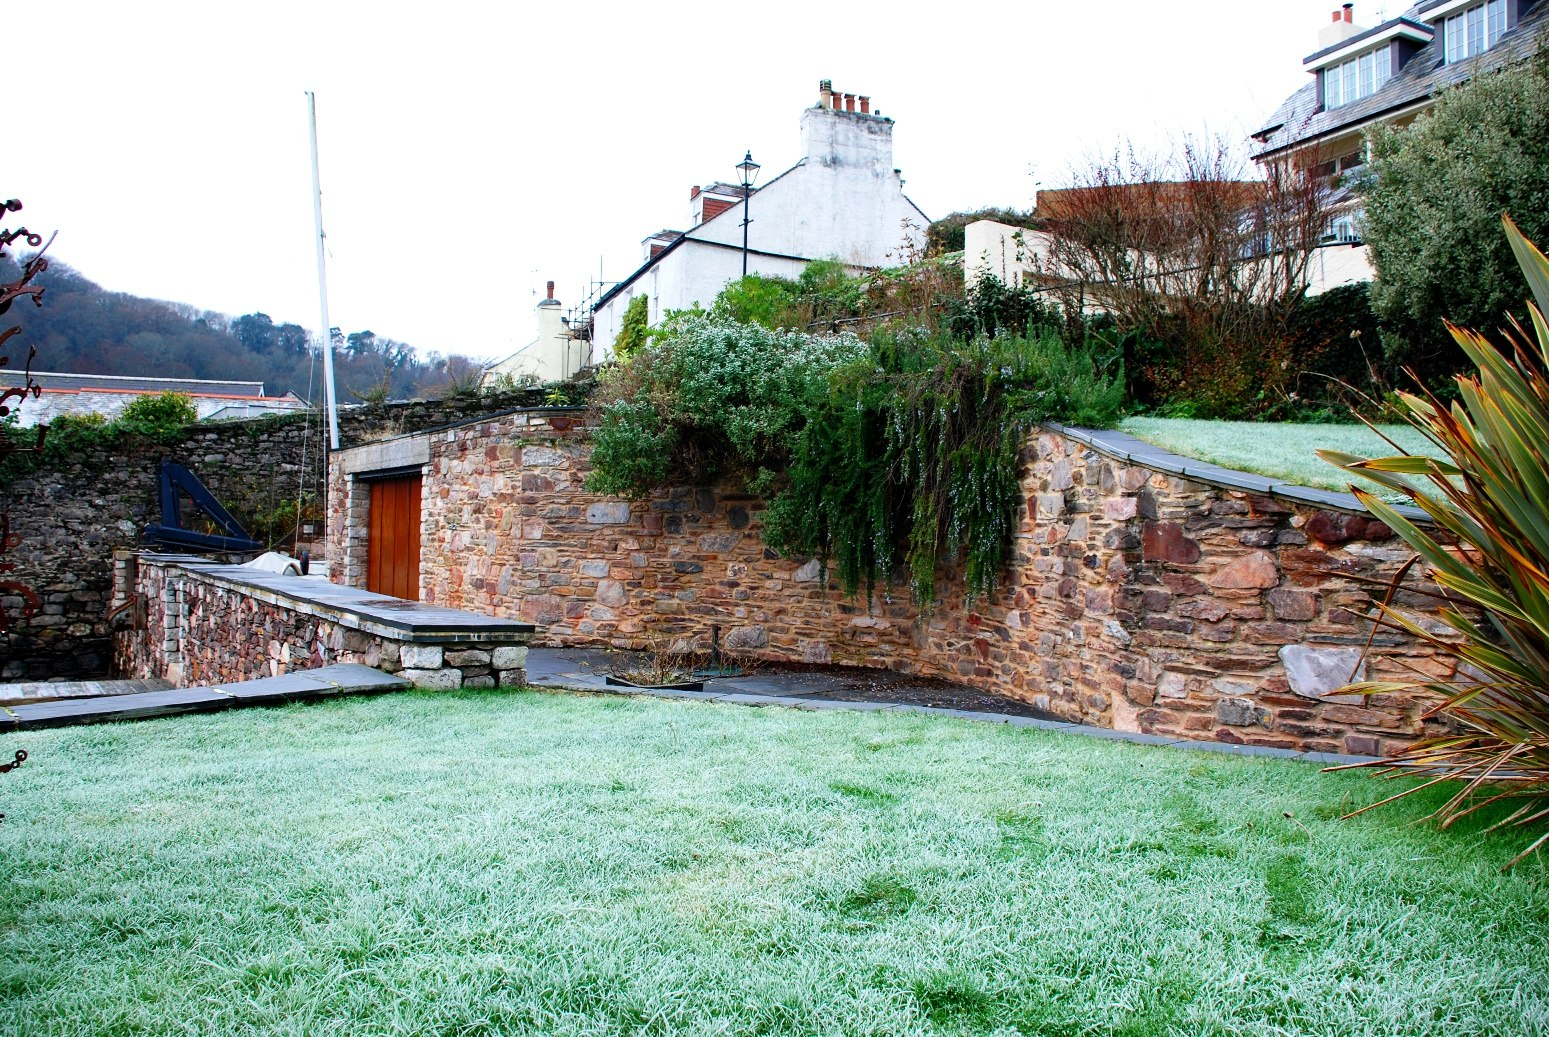 Landscaped garden with dry stone wall